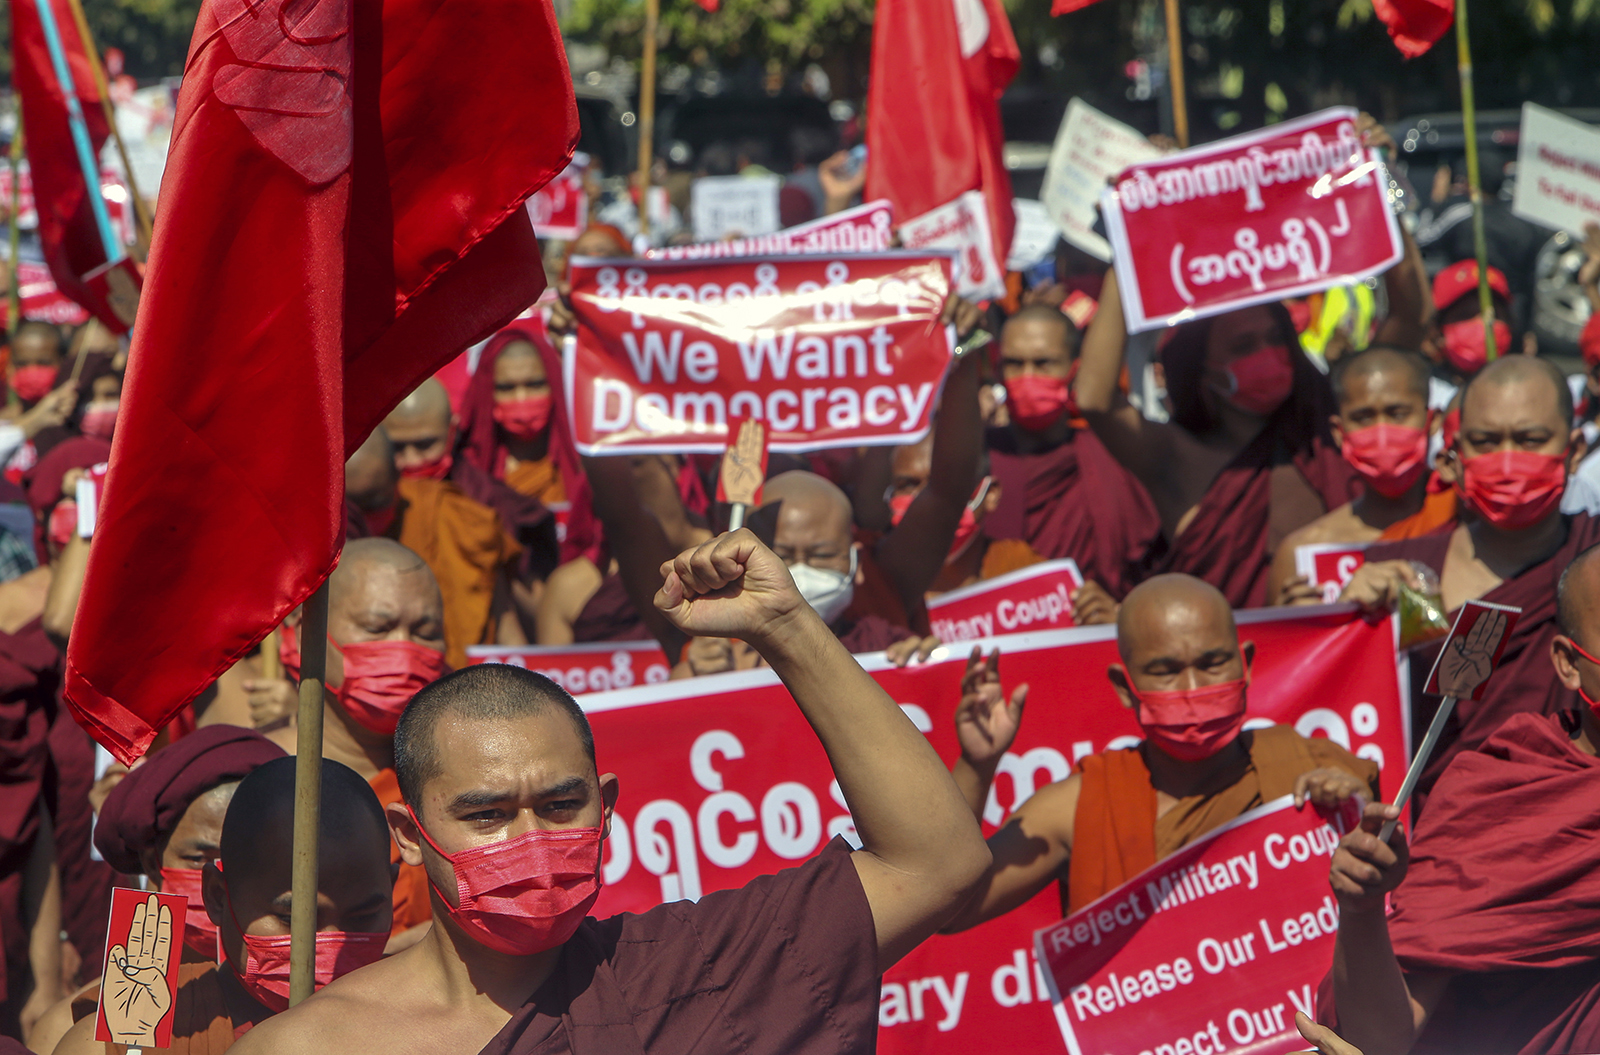 Buddhist monks lead a protest march against the military coup in Mandalay, Myanmar, on Wed., Feb. 10, 2021. Protesters continued to gather Wednesday morning in Mandalay breaching Myanmar's new military rulers' decrees that effectively banned peaceful public protests in the country's two biggest cities. (AP Photo)